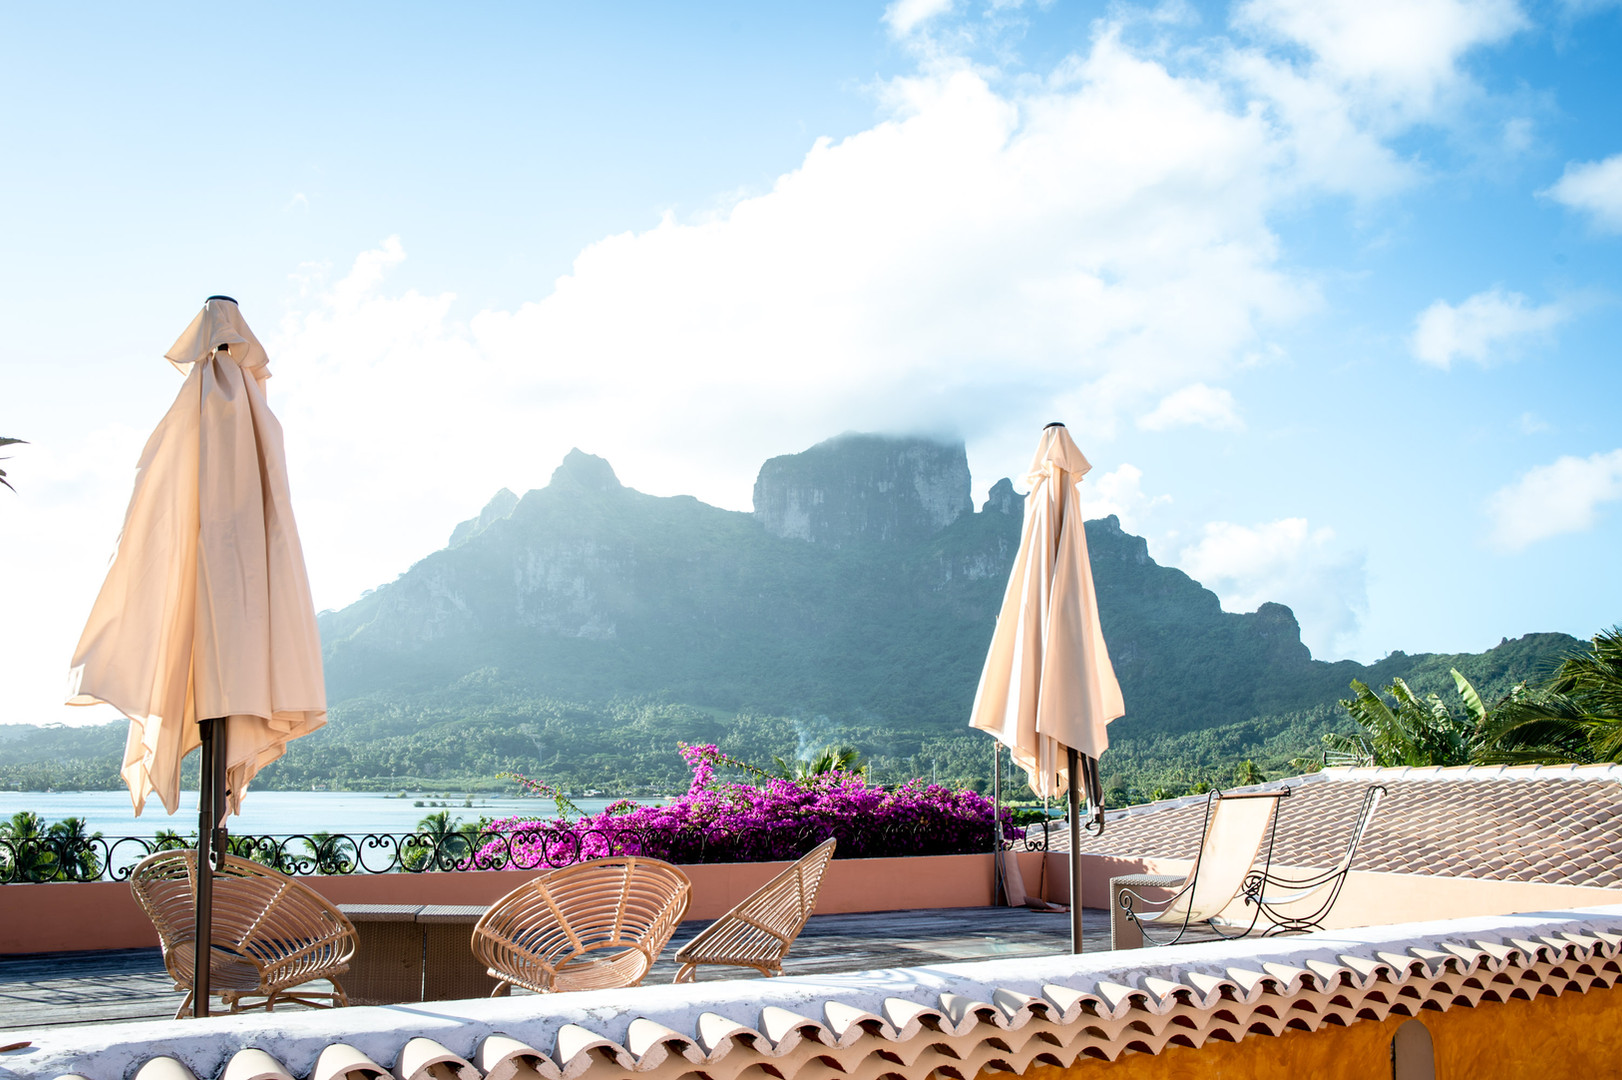 A beautiful terrace for breathtaking views - relax or enjoy a fresh drink on the terrace